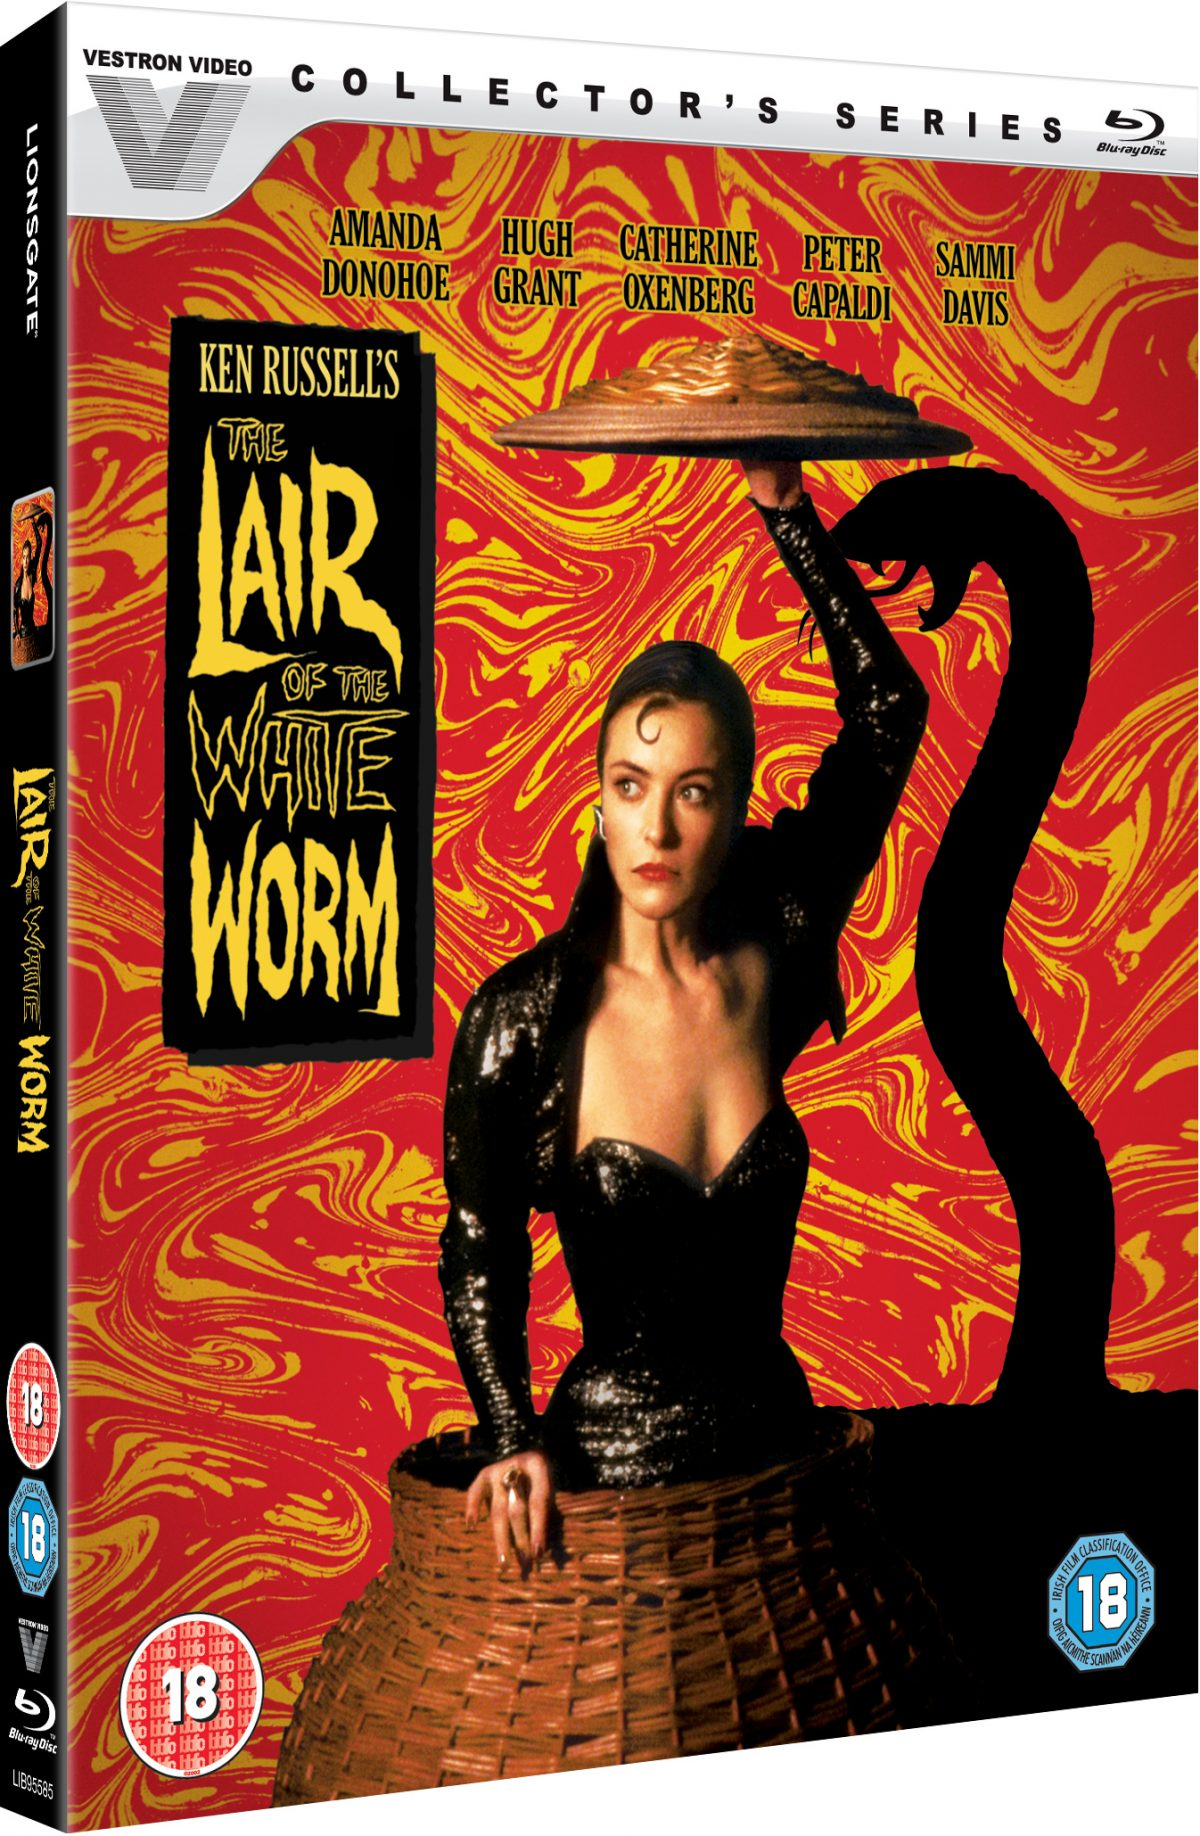 Welcome to the bizarre world of The Lair of the White Worm and Ken Russell who is known for his flamboyant and controversial style filmmaking and this 1988 movie is no exception, includingits moments of sexualitythat is pure Russell.